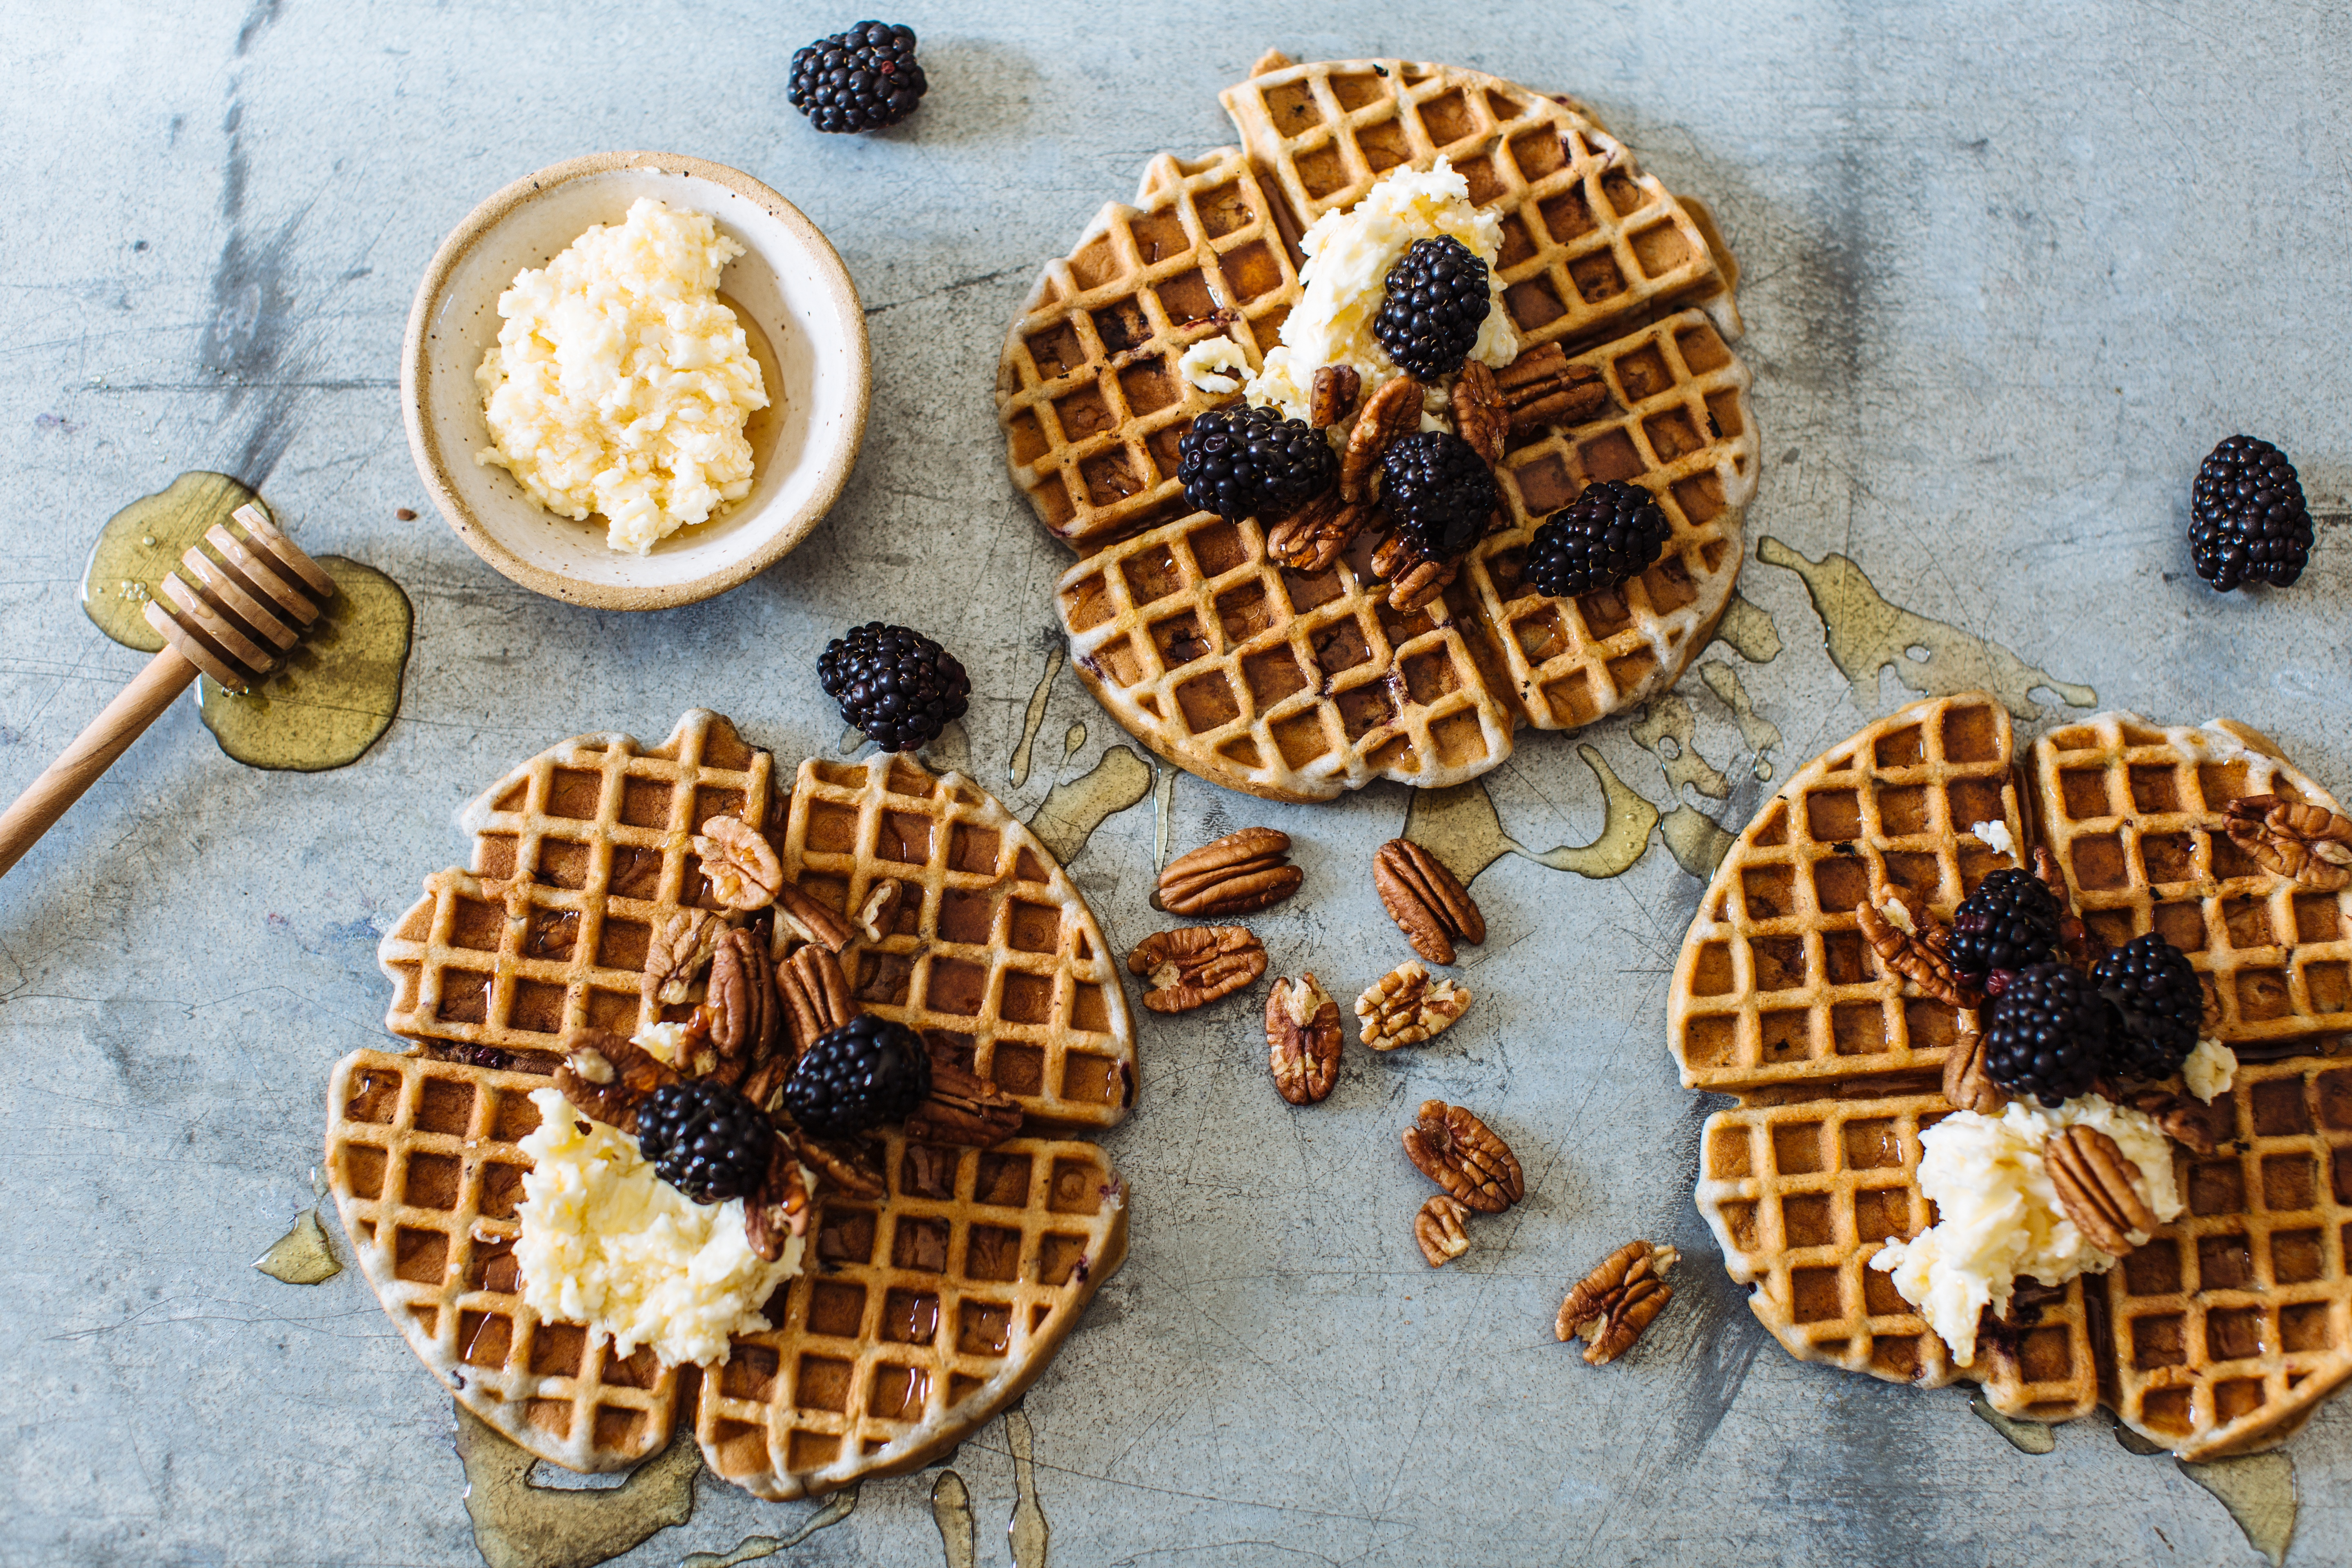 Blackberry & Pecan Belgian Waffles with Whipped Honey Butter